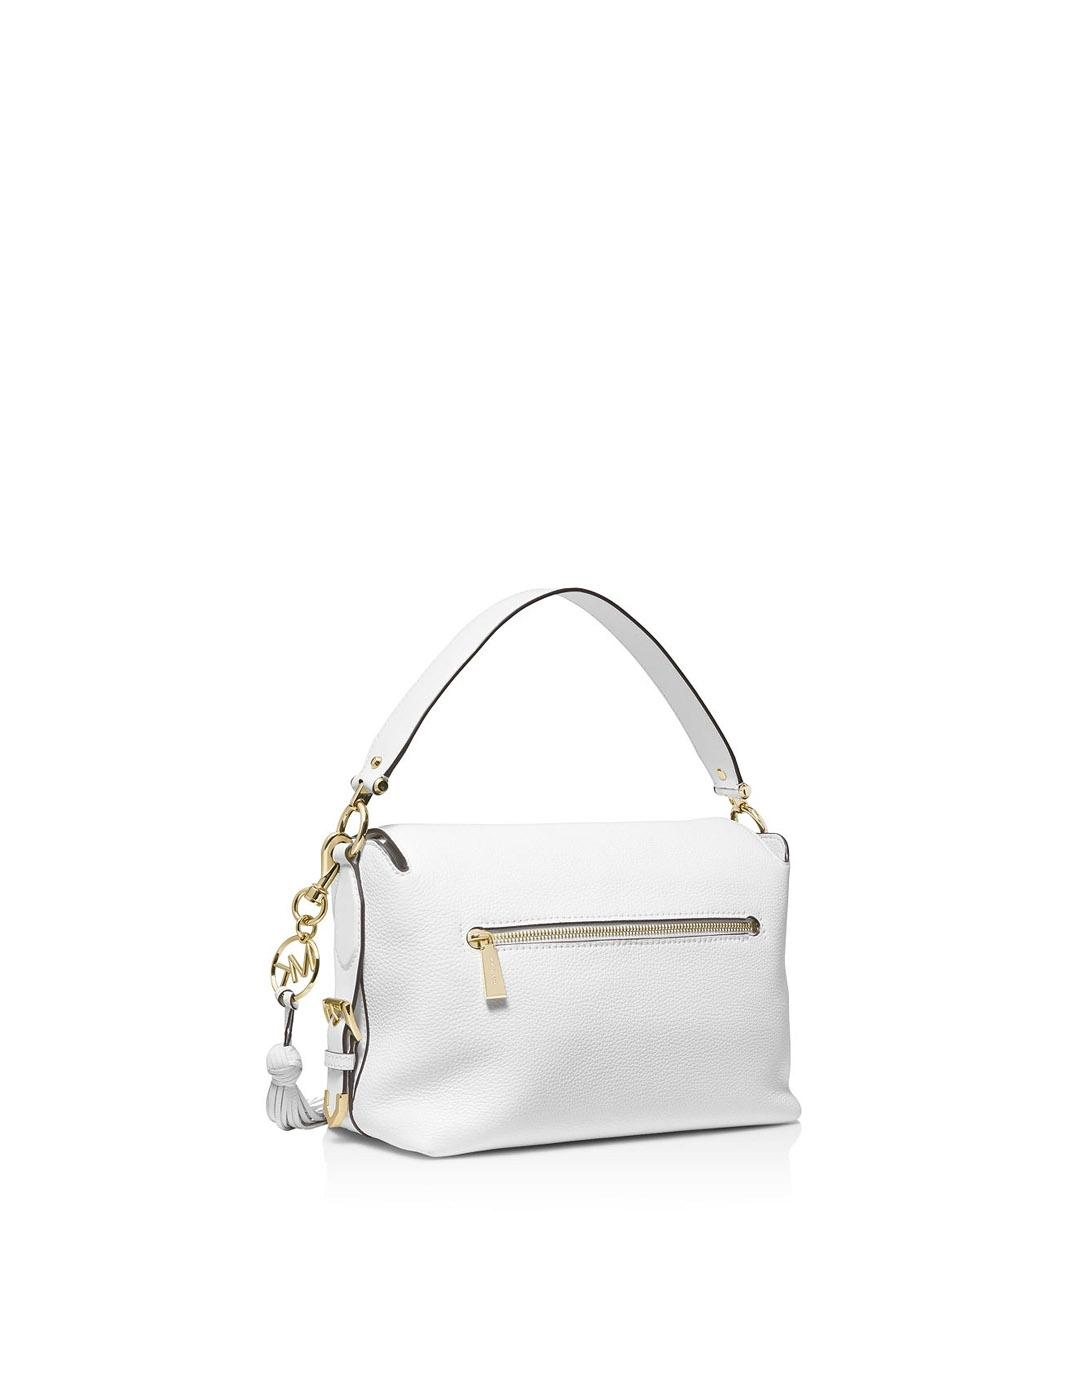 Bolso Michael Kors blanco Brooke Medium Leather Satchel